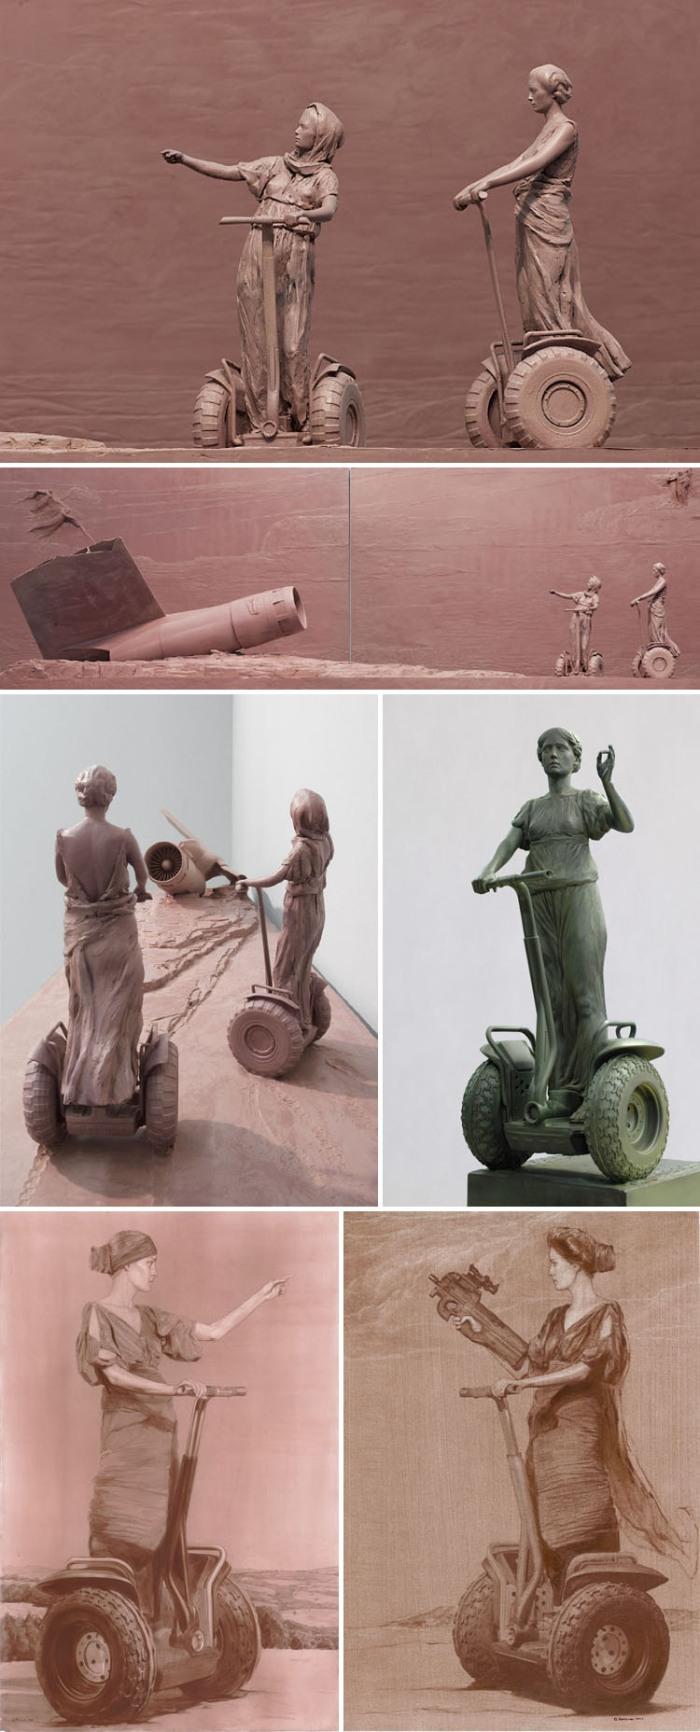 Russian Contemporary art, modernized classic sculpture, Bronze statues, Sepia sketches, Hellenic figures on scooters, Morozov, Praetoria, collabcubed